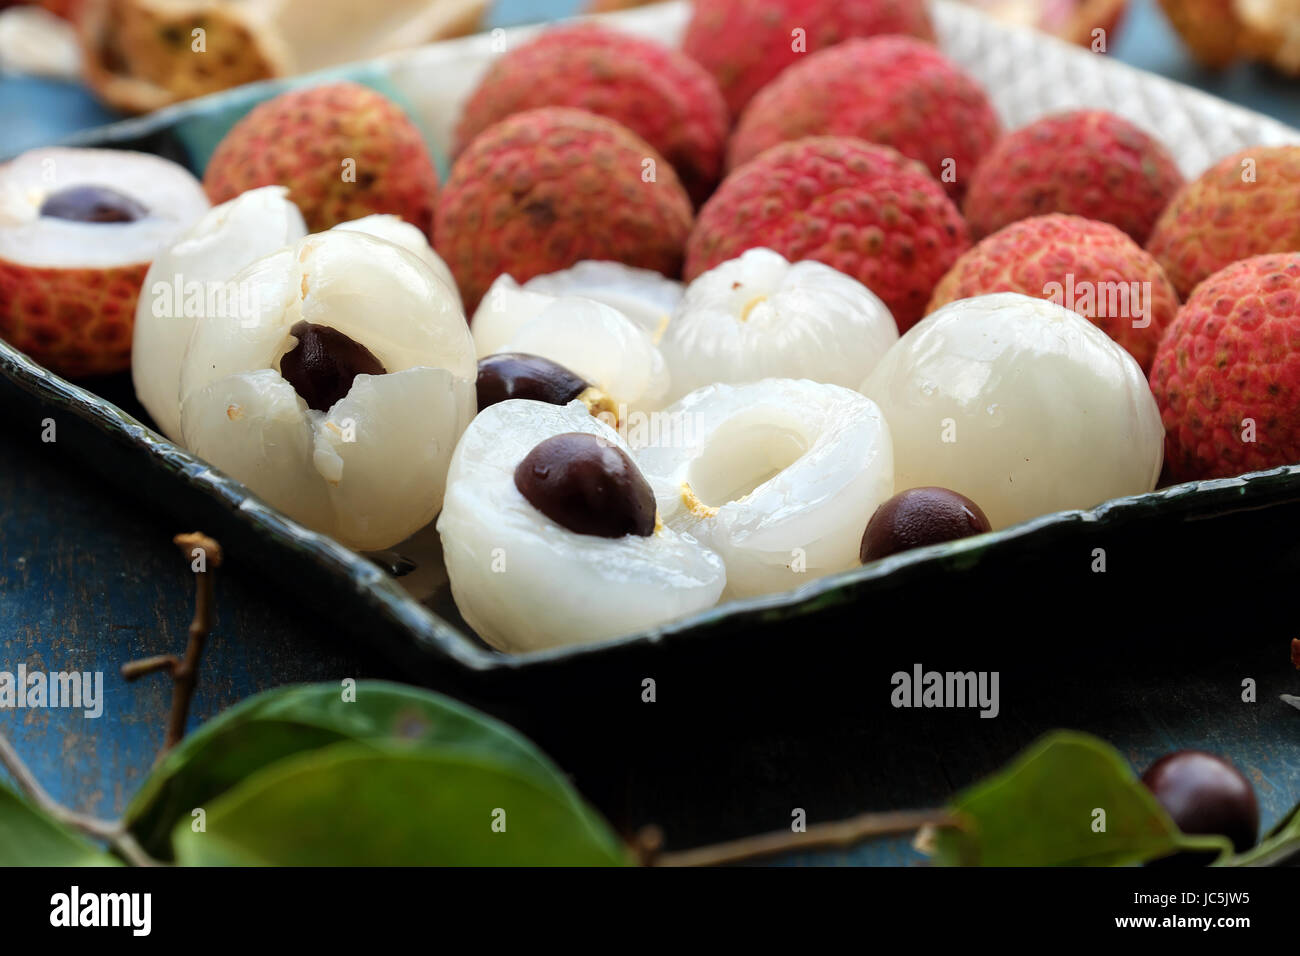 Close up plate of fruit on blue background, litchi or lychee fruits or Vai thieu. Red fruit peel with juicy pulp - Stock Image